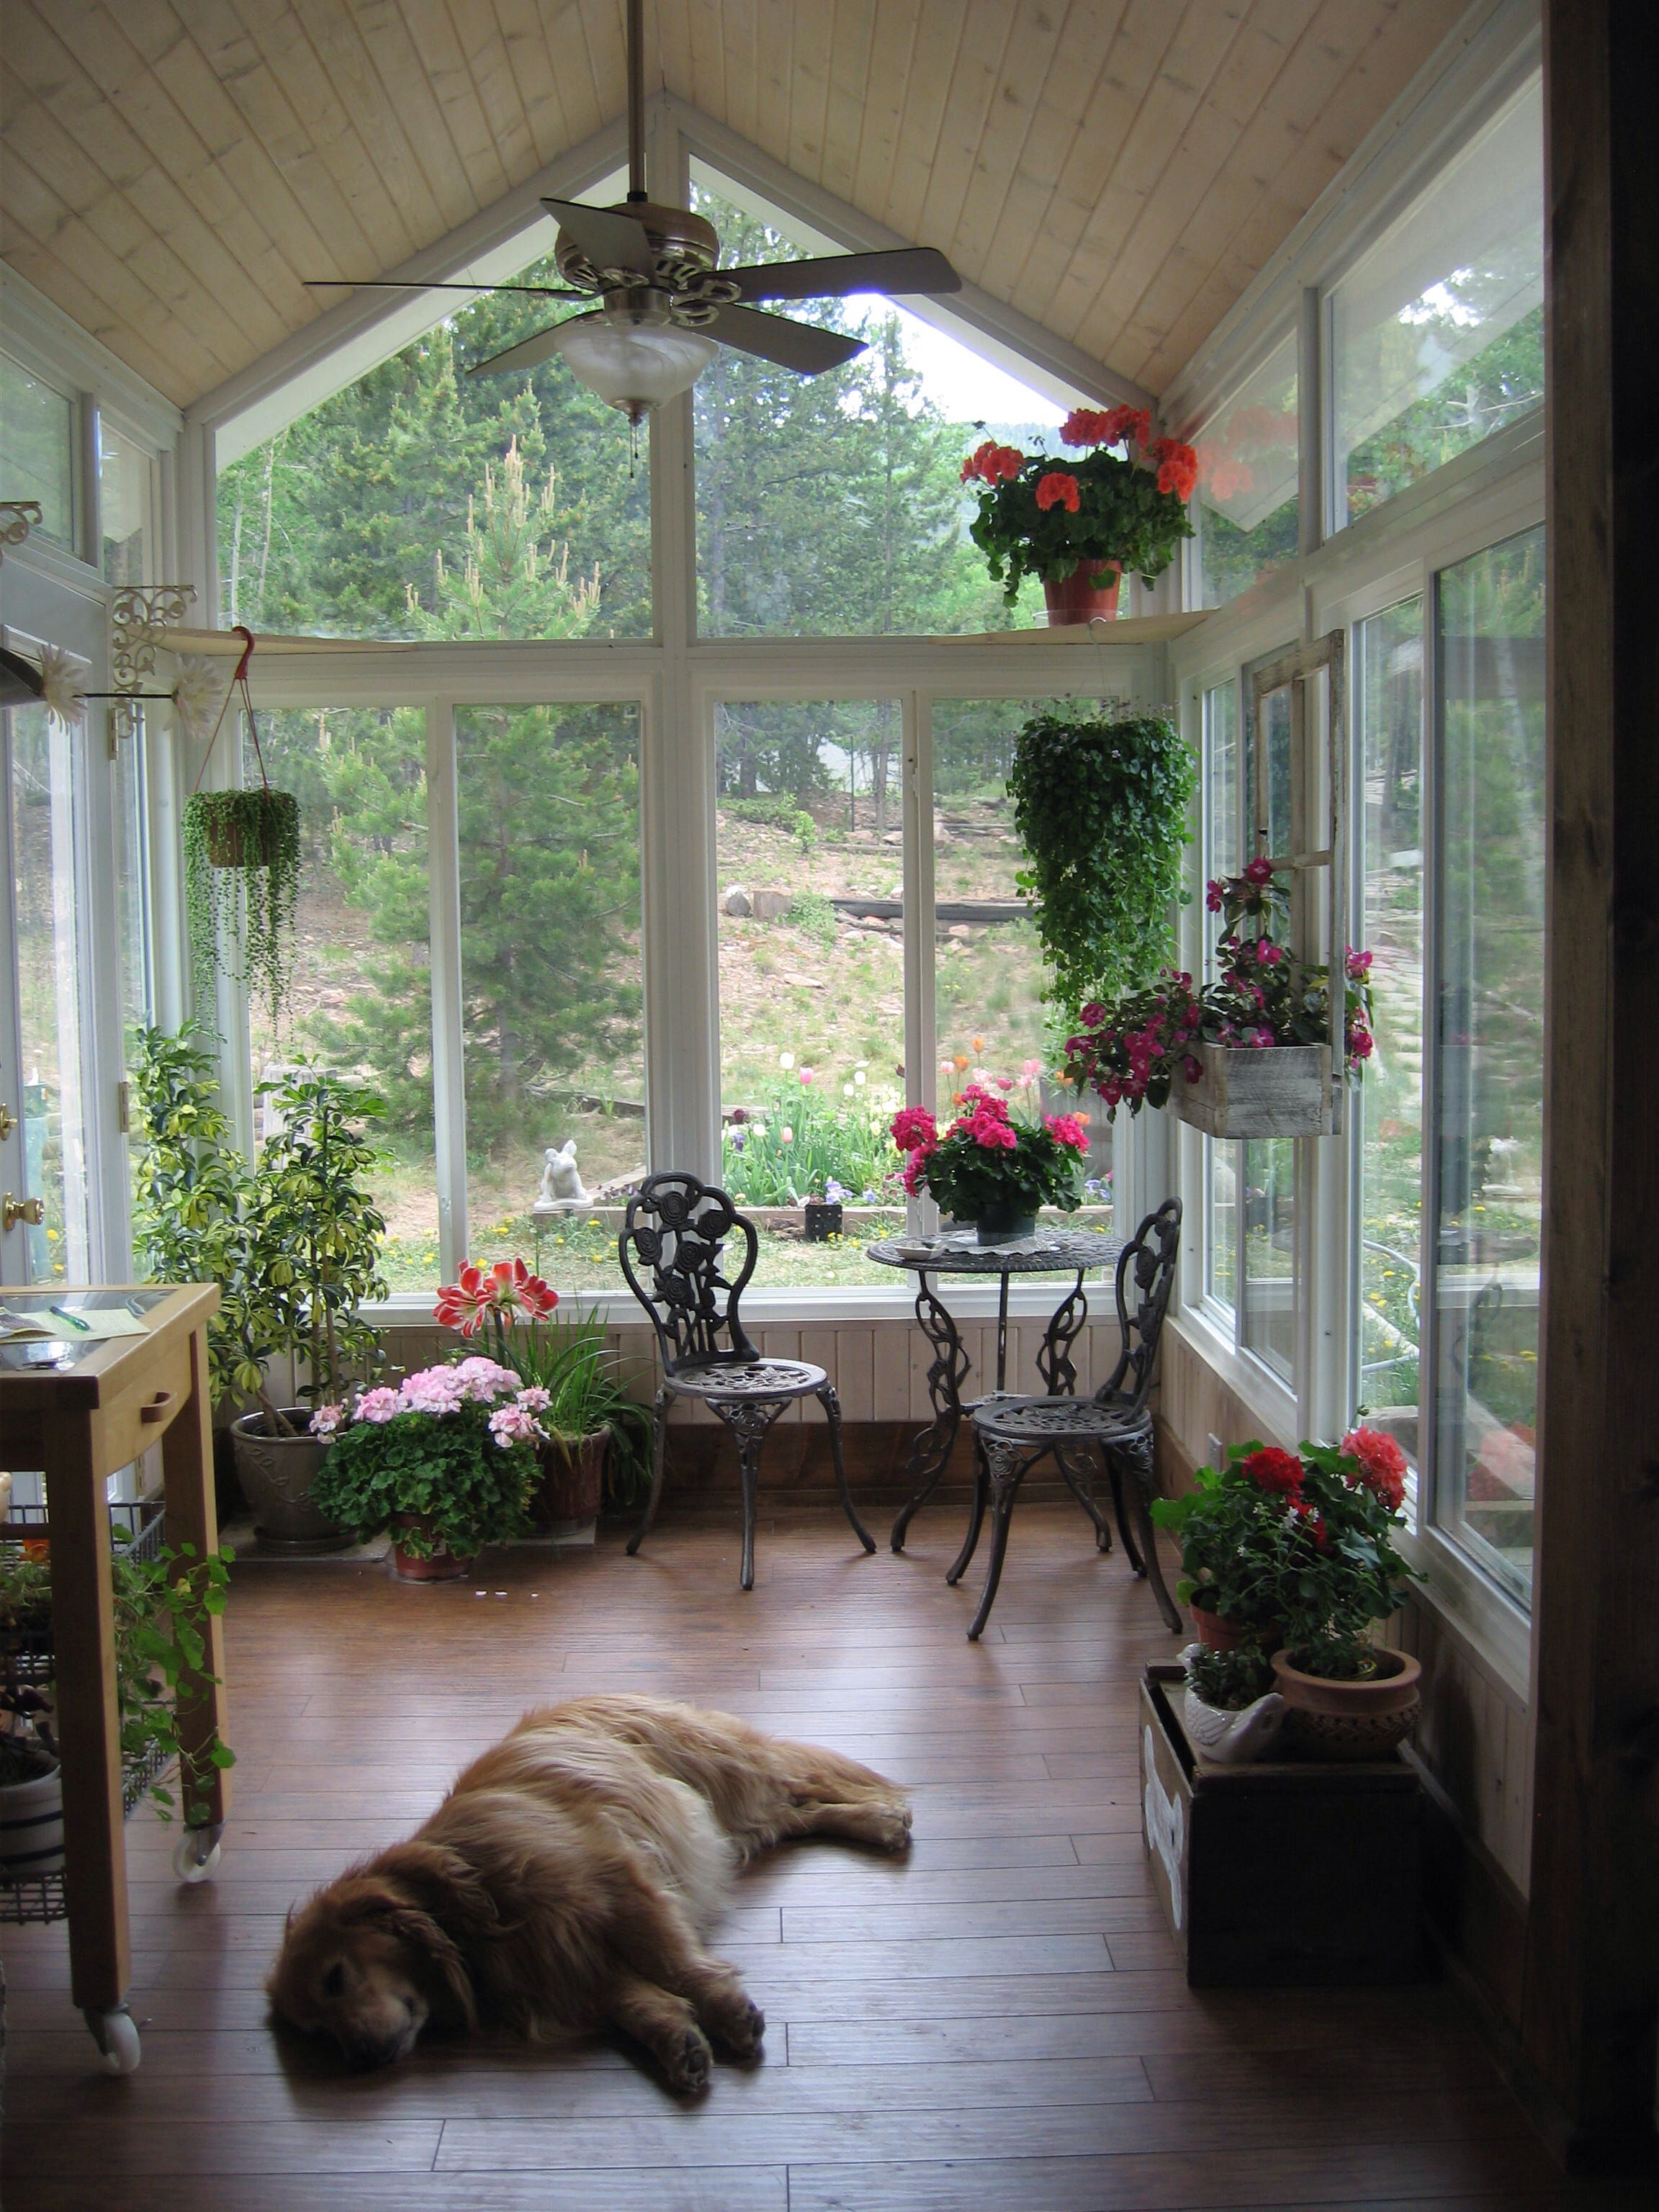 Ha This Is What My Sunroom Will Really Look Like With